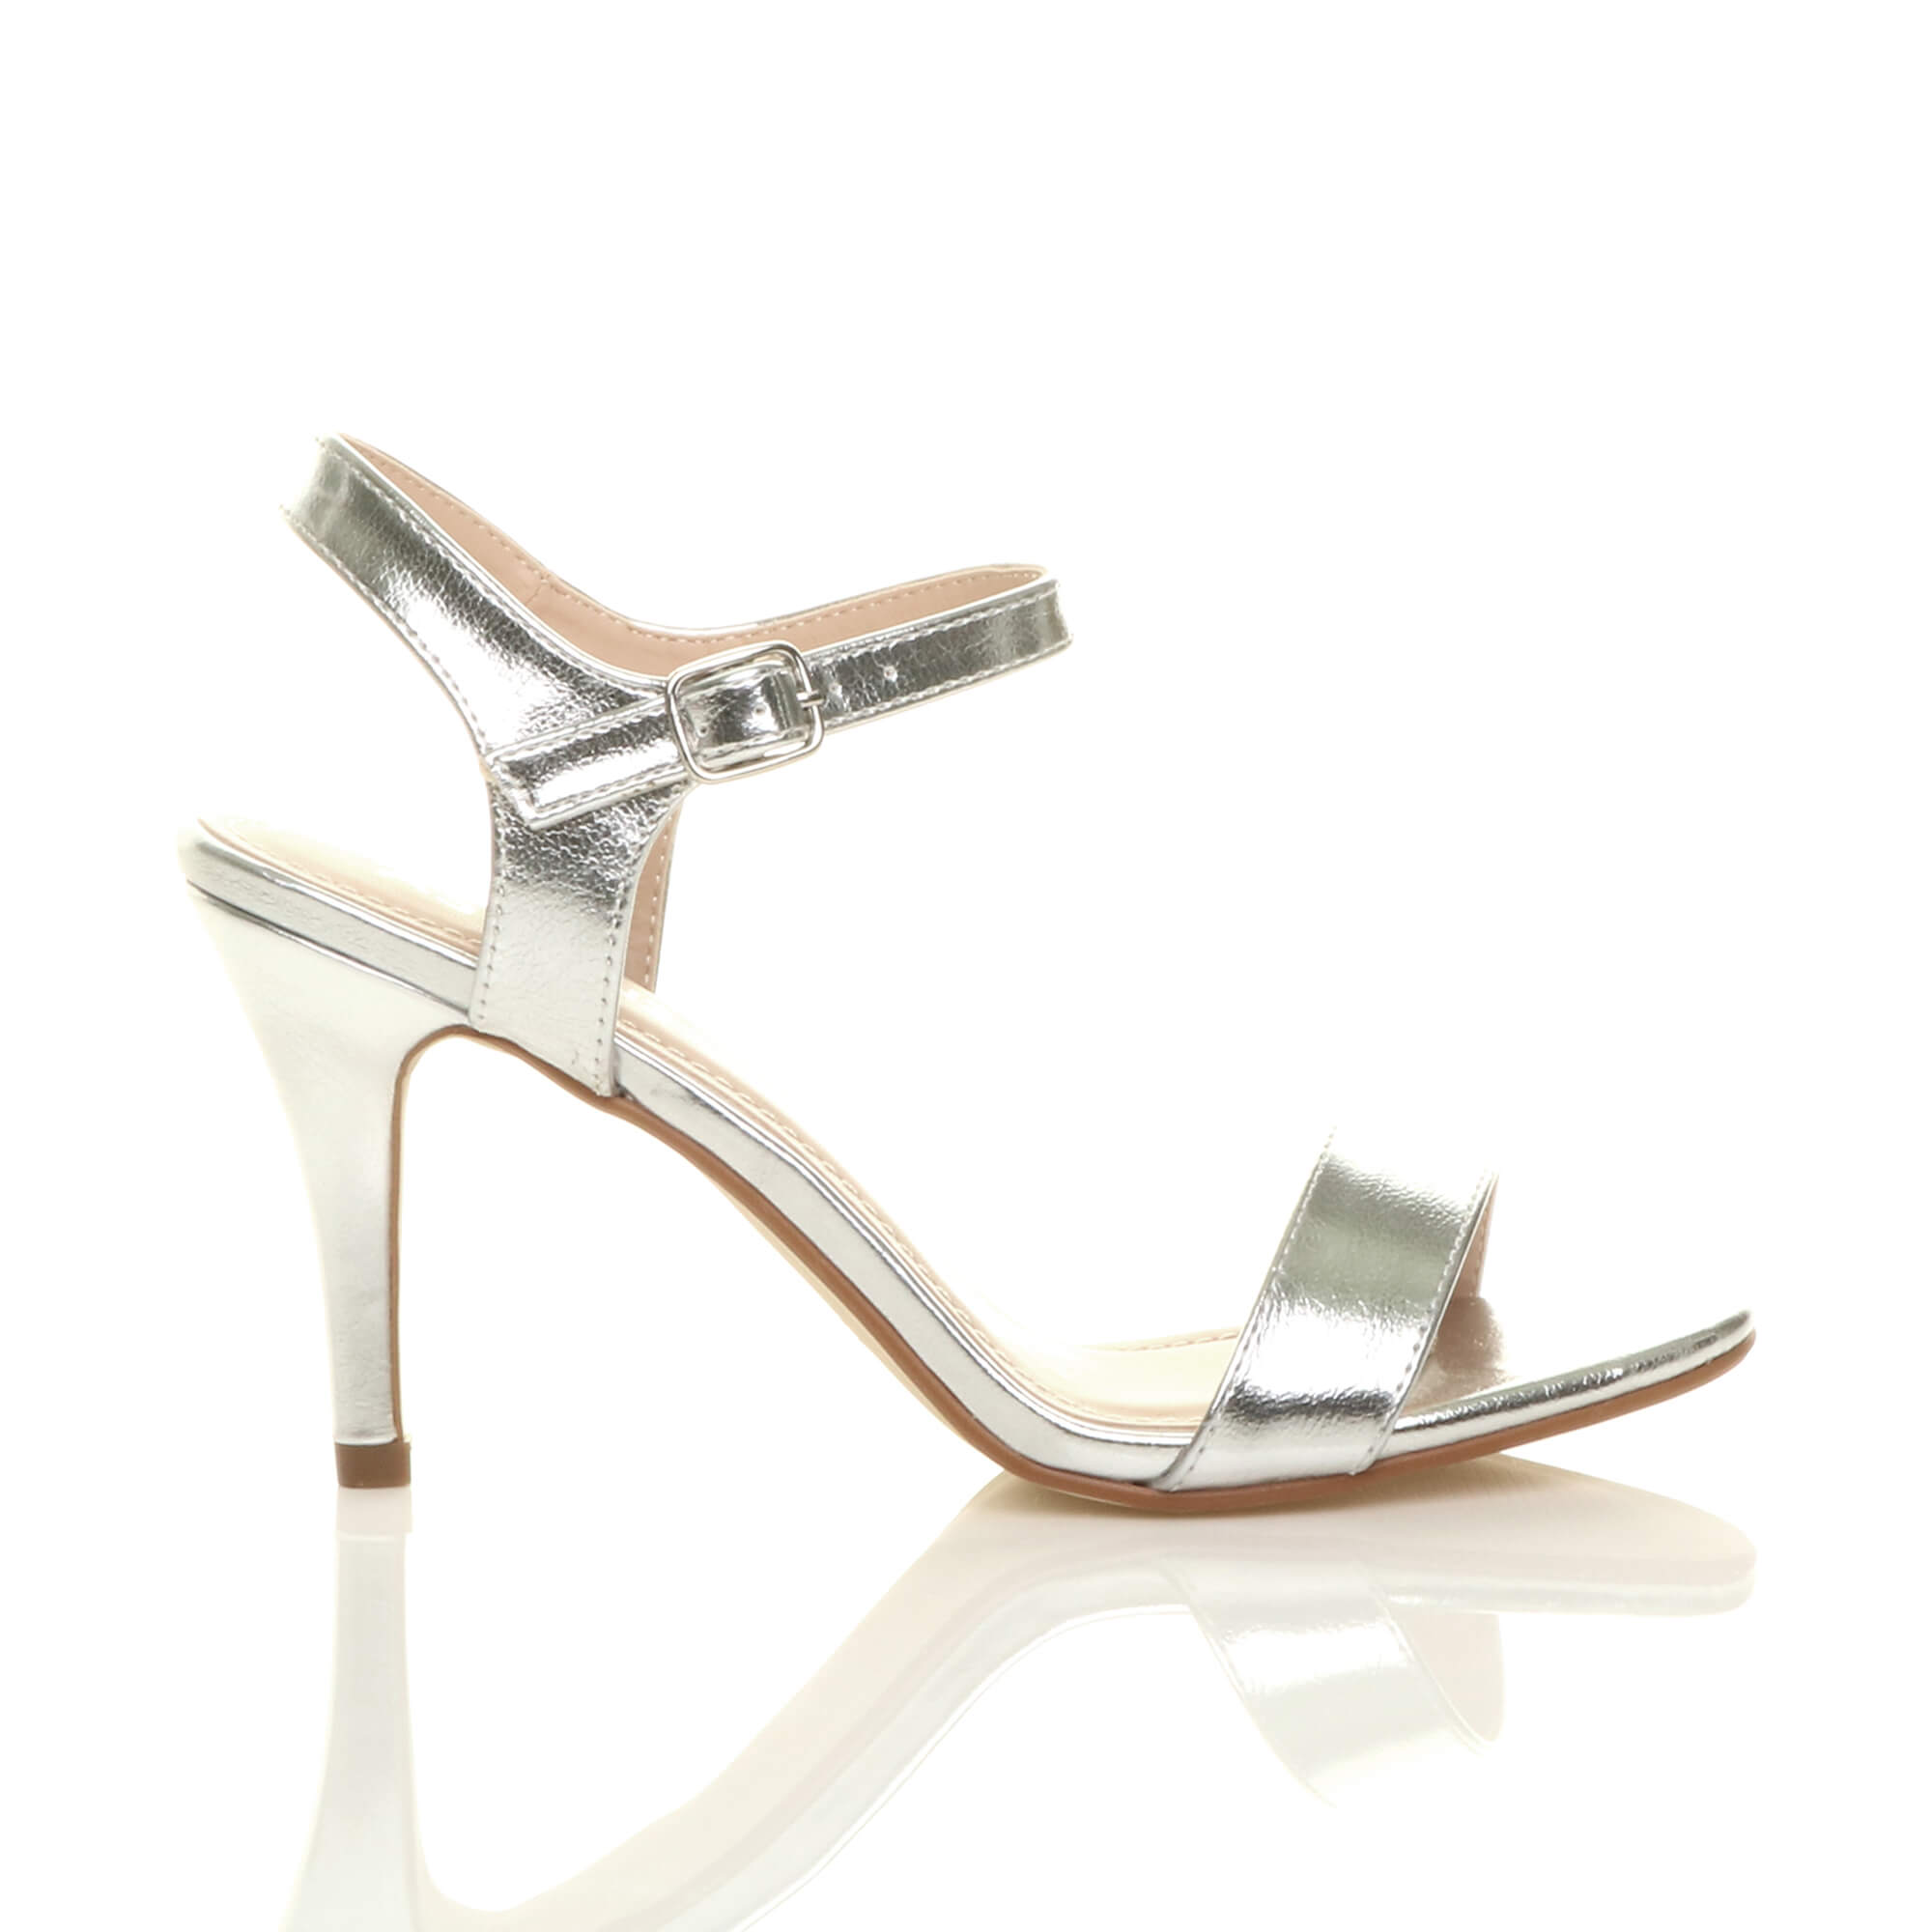 WOMENS-LADIES-HIGH-HEEL-BUCKLE-STRAPPY-BASIC-BARELY-THERE-SANDALS-SHOES-SIZE thumbnail 129